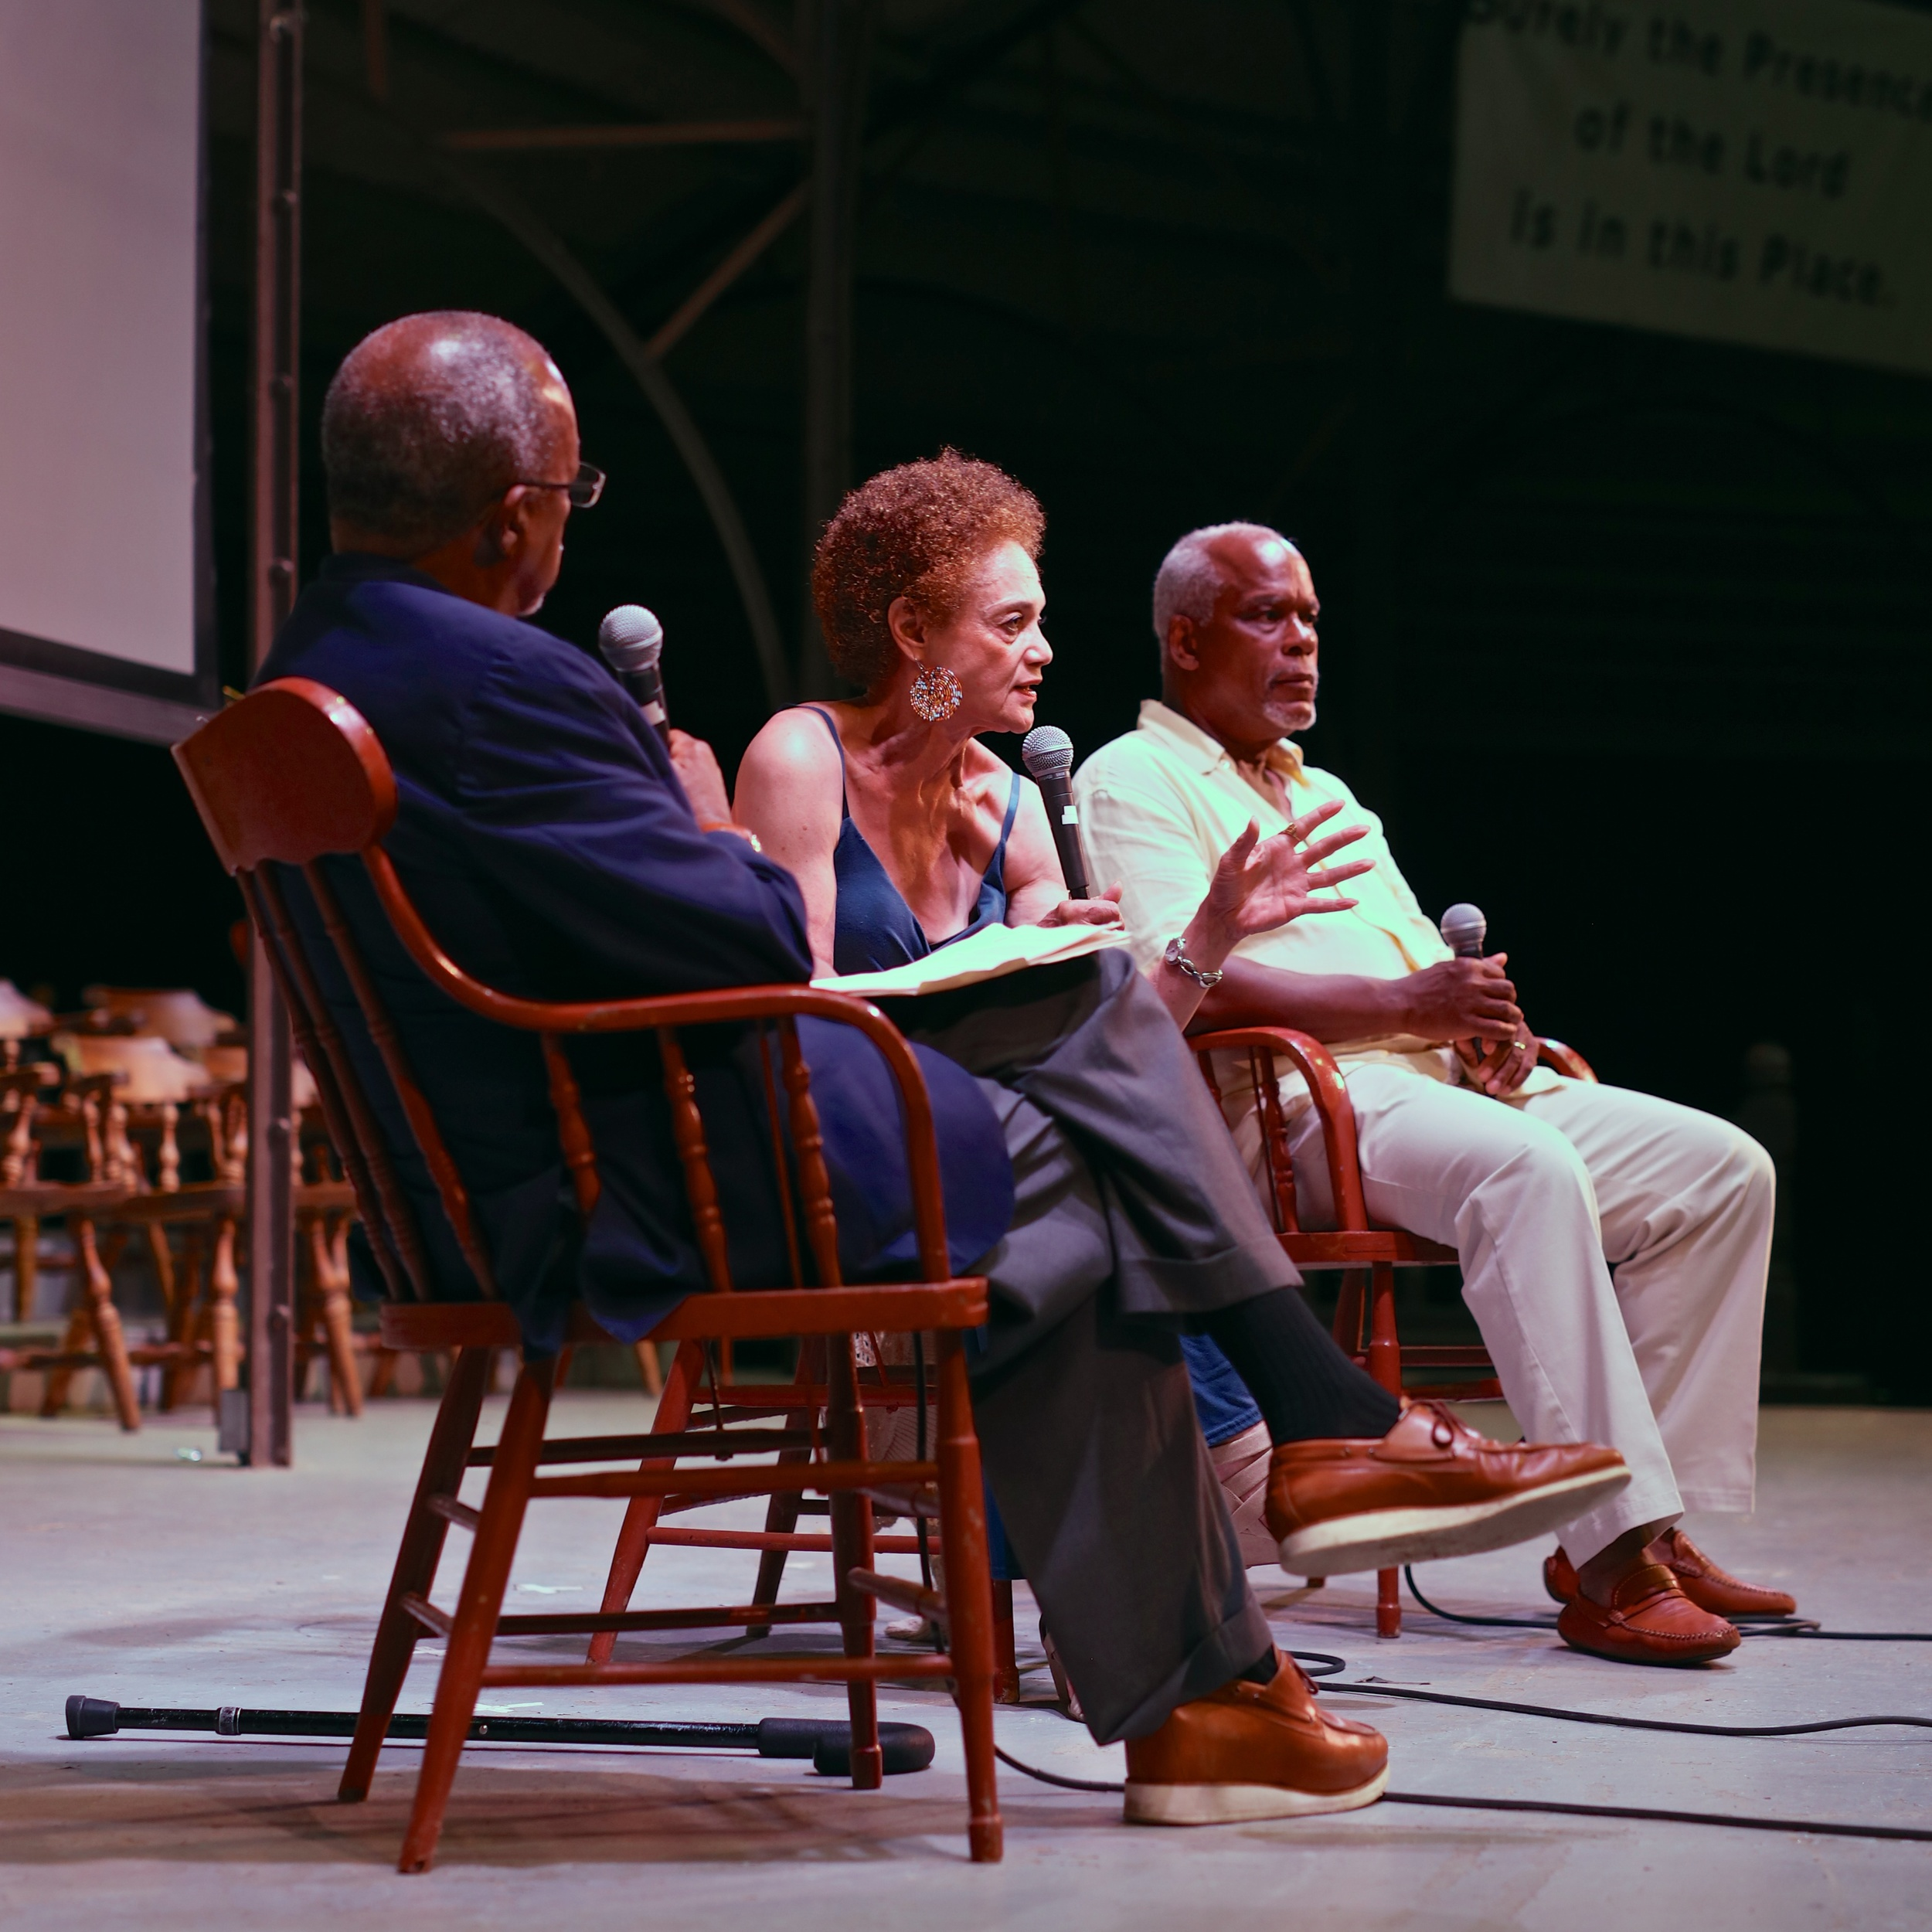 Director Stanley Nelson, former Black Panther Kathleen Cleaver, and Professor Henry Louis Gates, Jr. speak after the screening of THE BLACK PANTHERS: VANGUARD OF THE REVOLUTION on August 3, 2015,at the Tabernacle in Oak Bluffs. Photo by Reece Robinson.